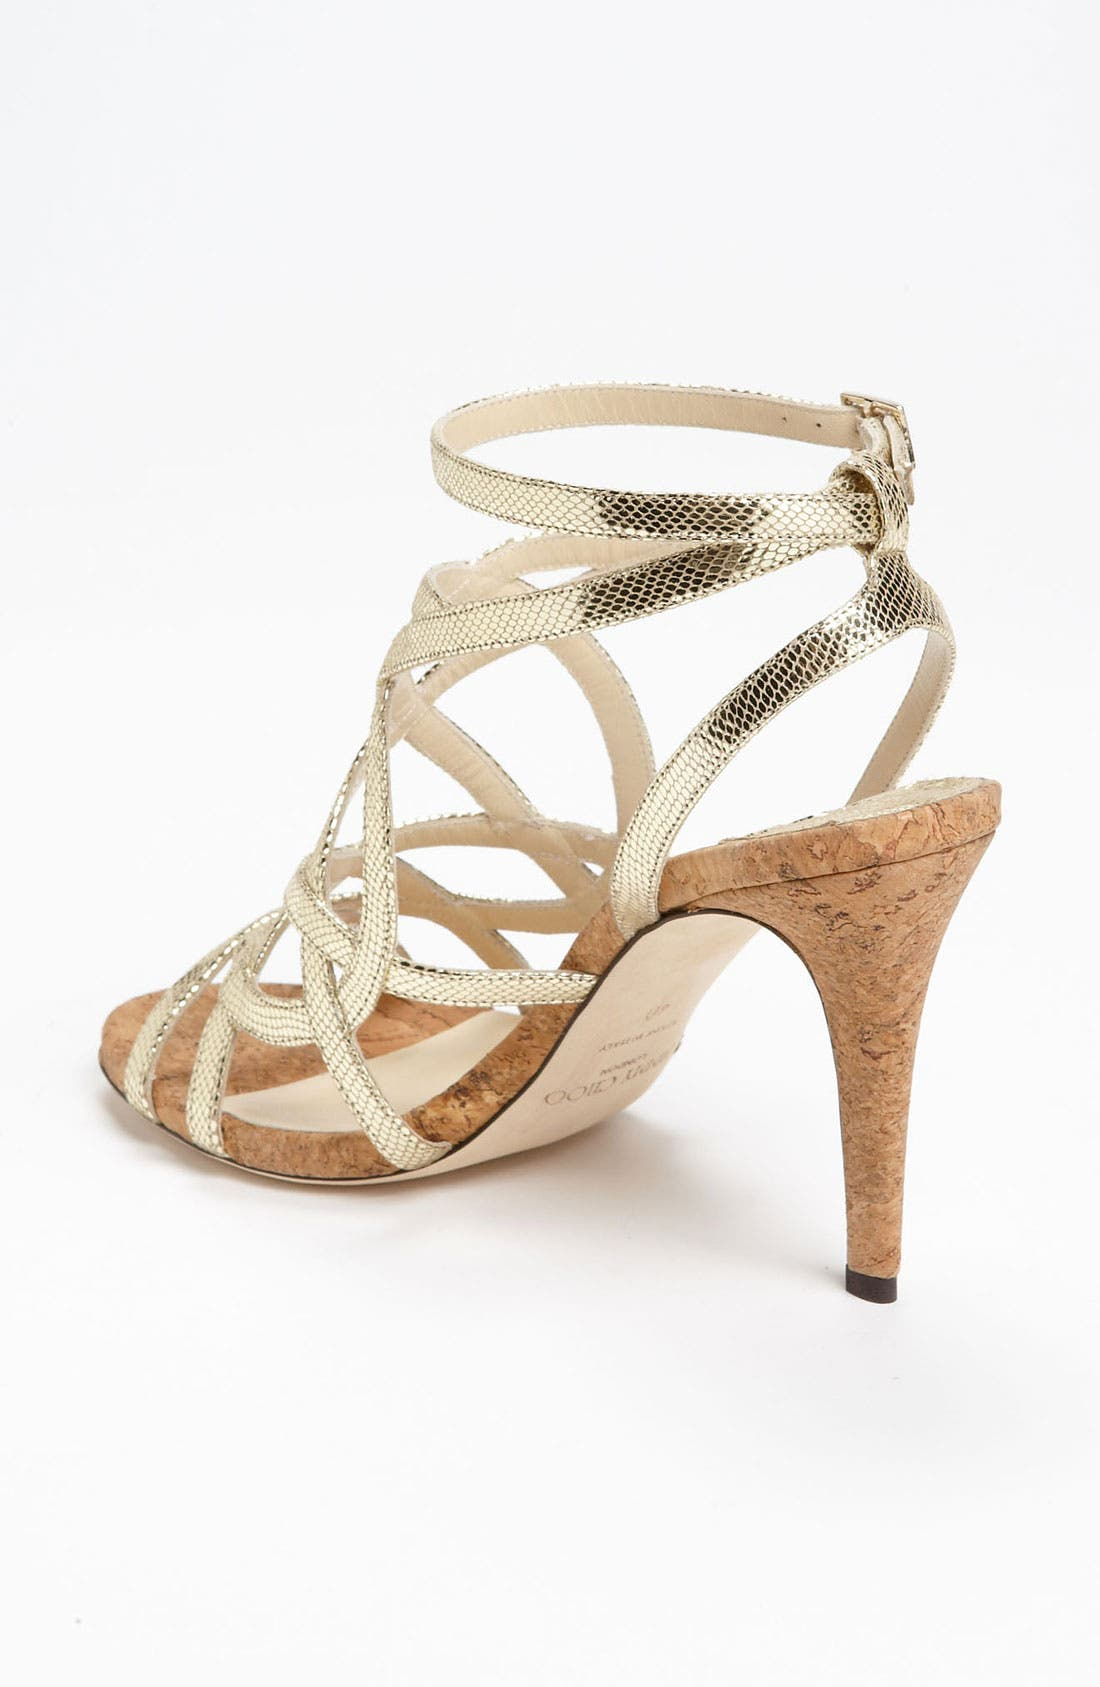 JIMMY CHOO,                             'Deeta' Sandal,                             Alternate thumbnail 4, color,                             710